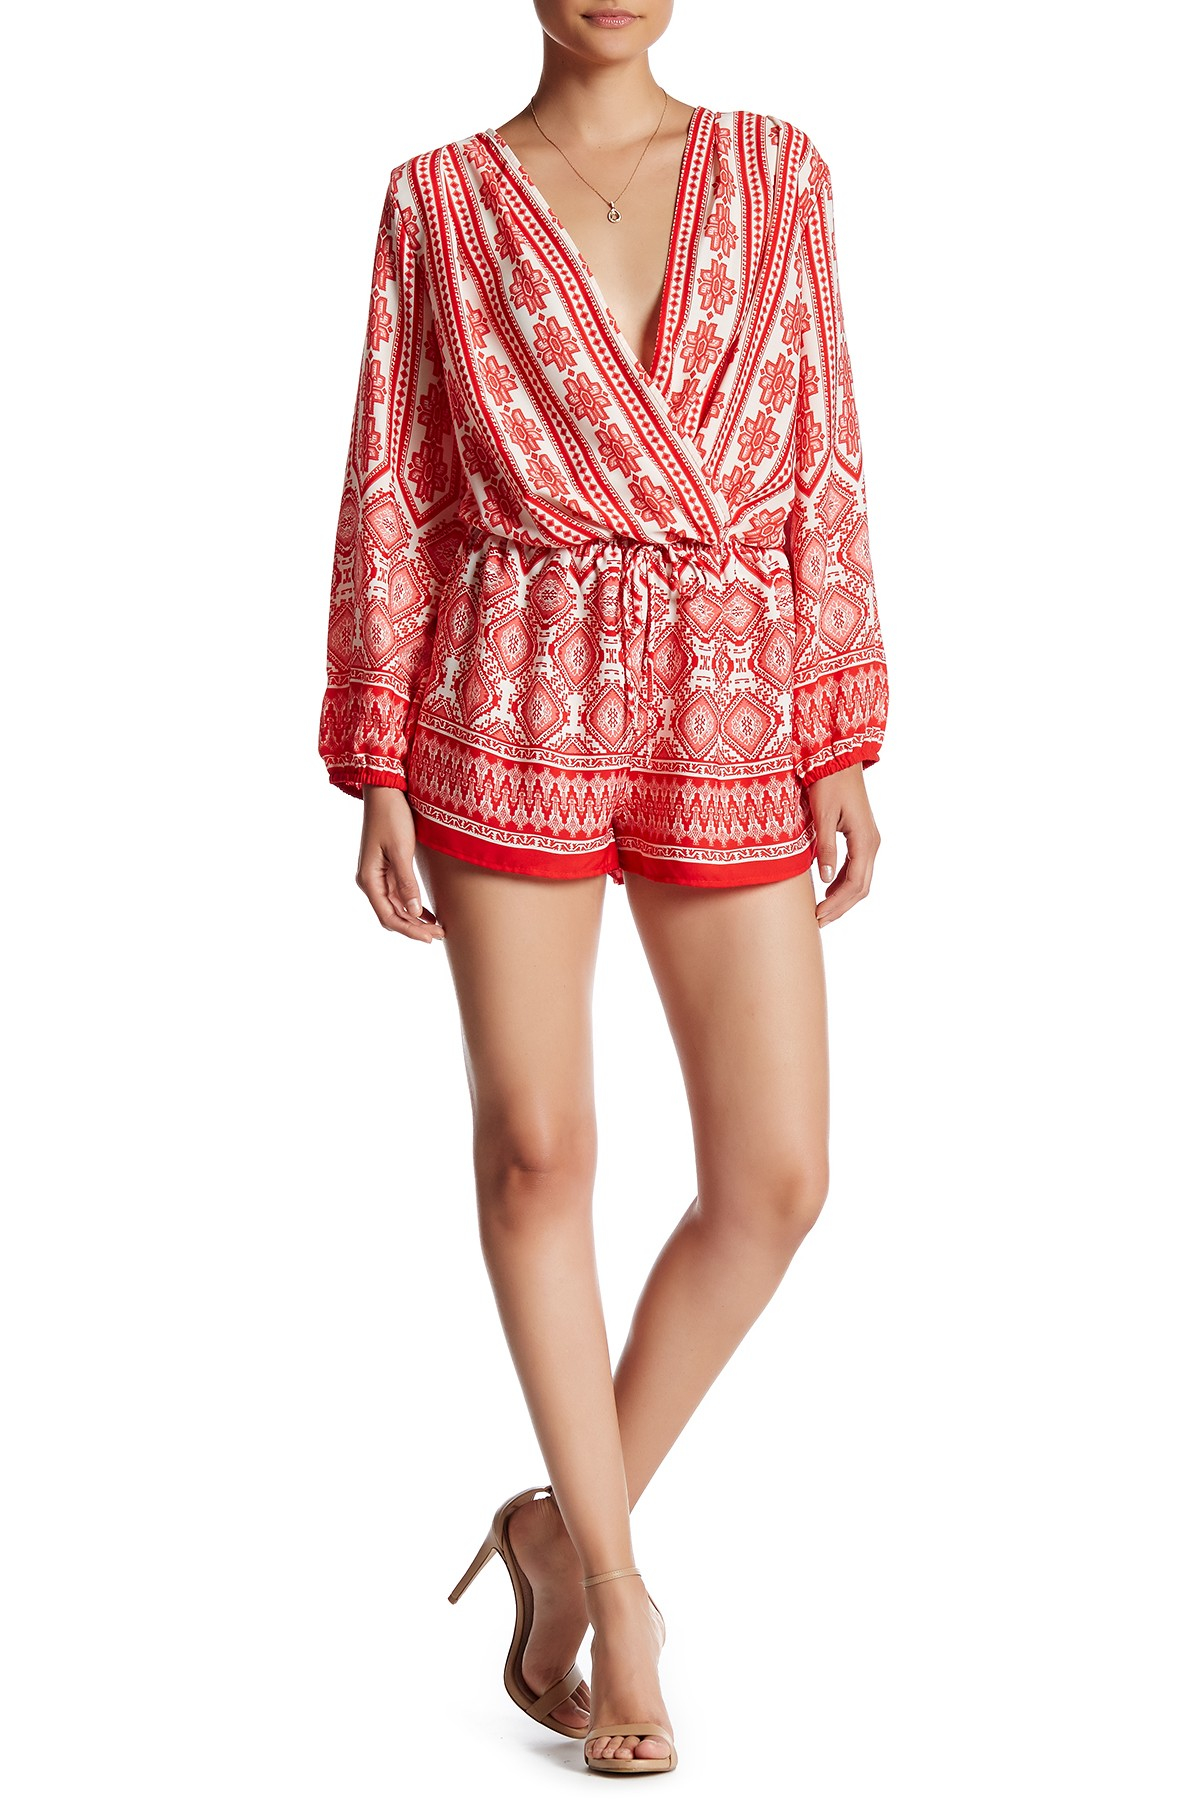 47aa261fa94d Lyst - Fraiche By J Kith Printed Romper in Red